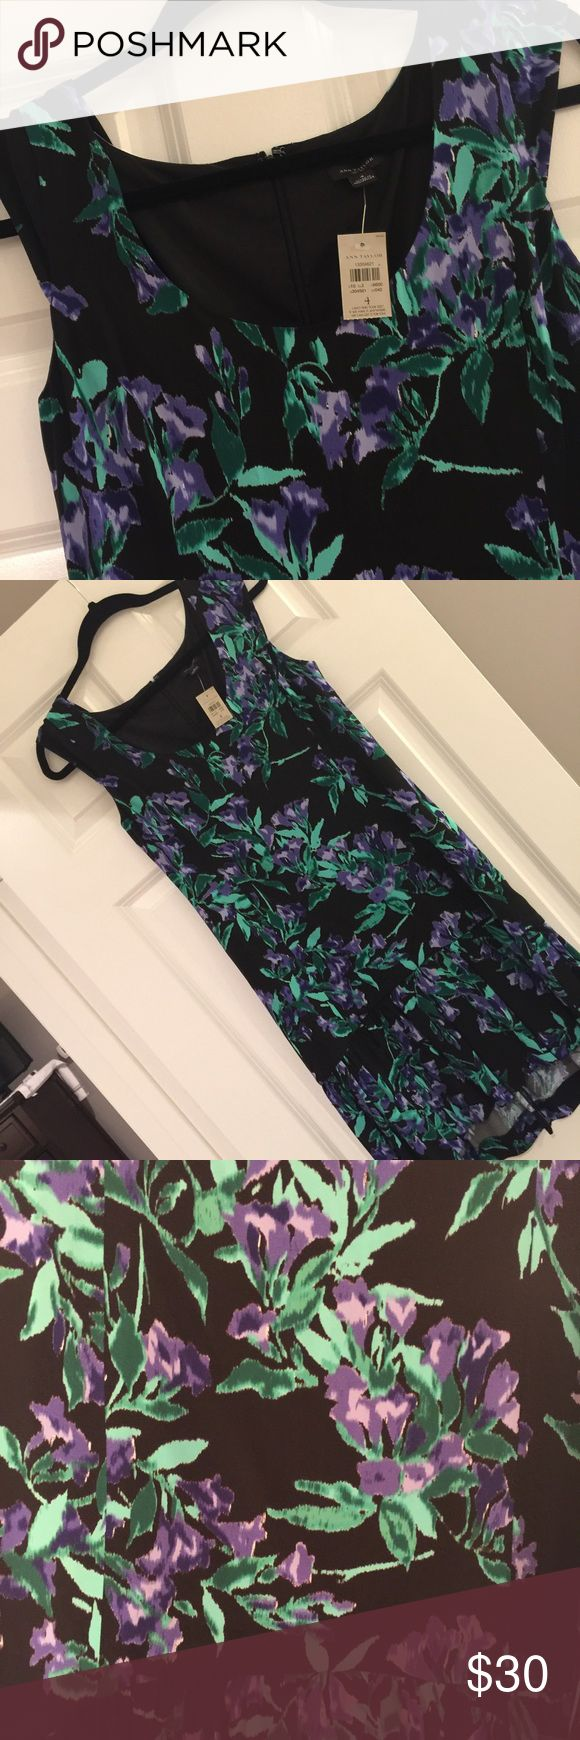 LOFT Summer Dress Super cute and great colors. Has give at the bottom for hippier ladies. A must have for this coming up summer!! Smoke free home. No trades. LOFT Dresses